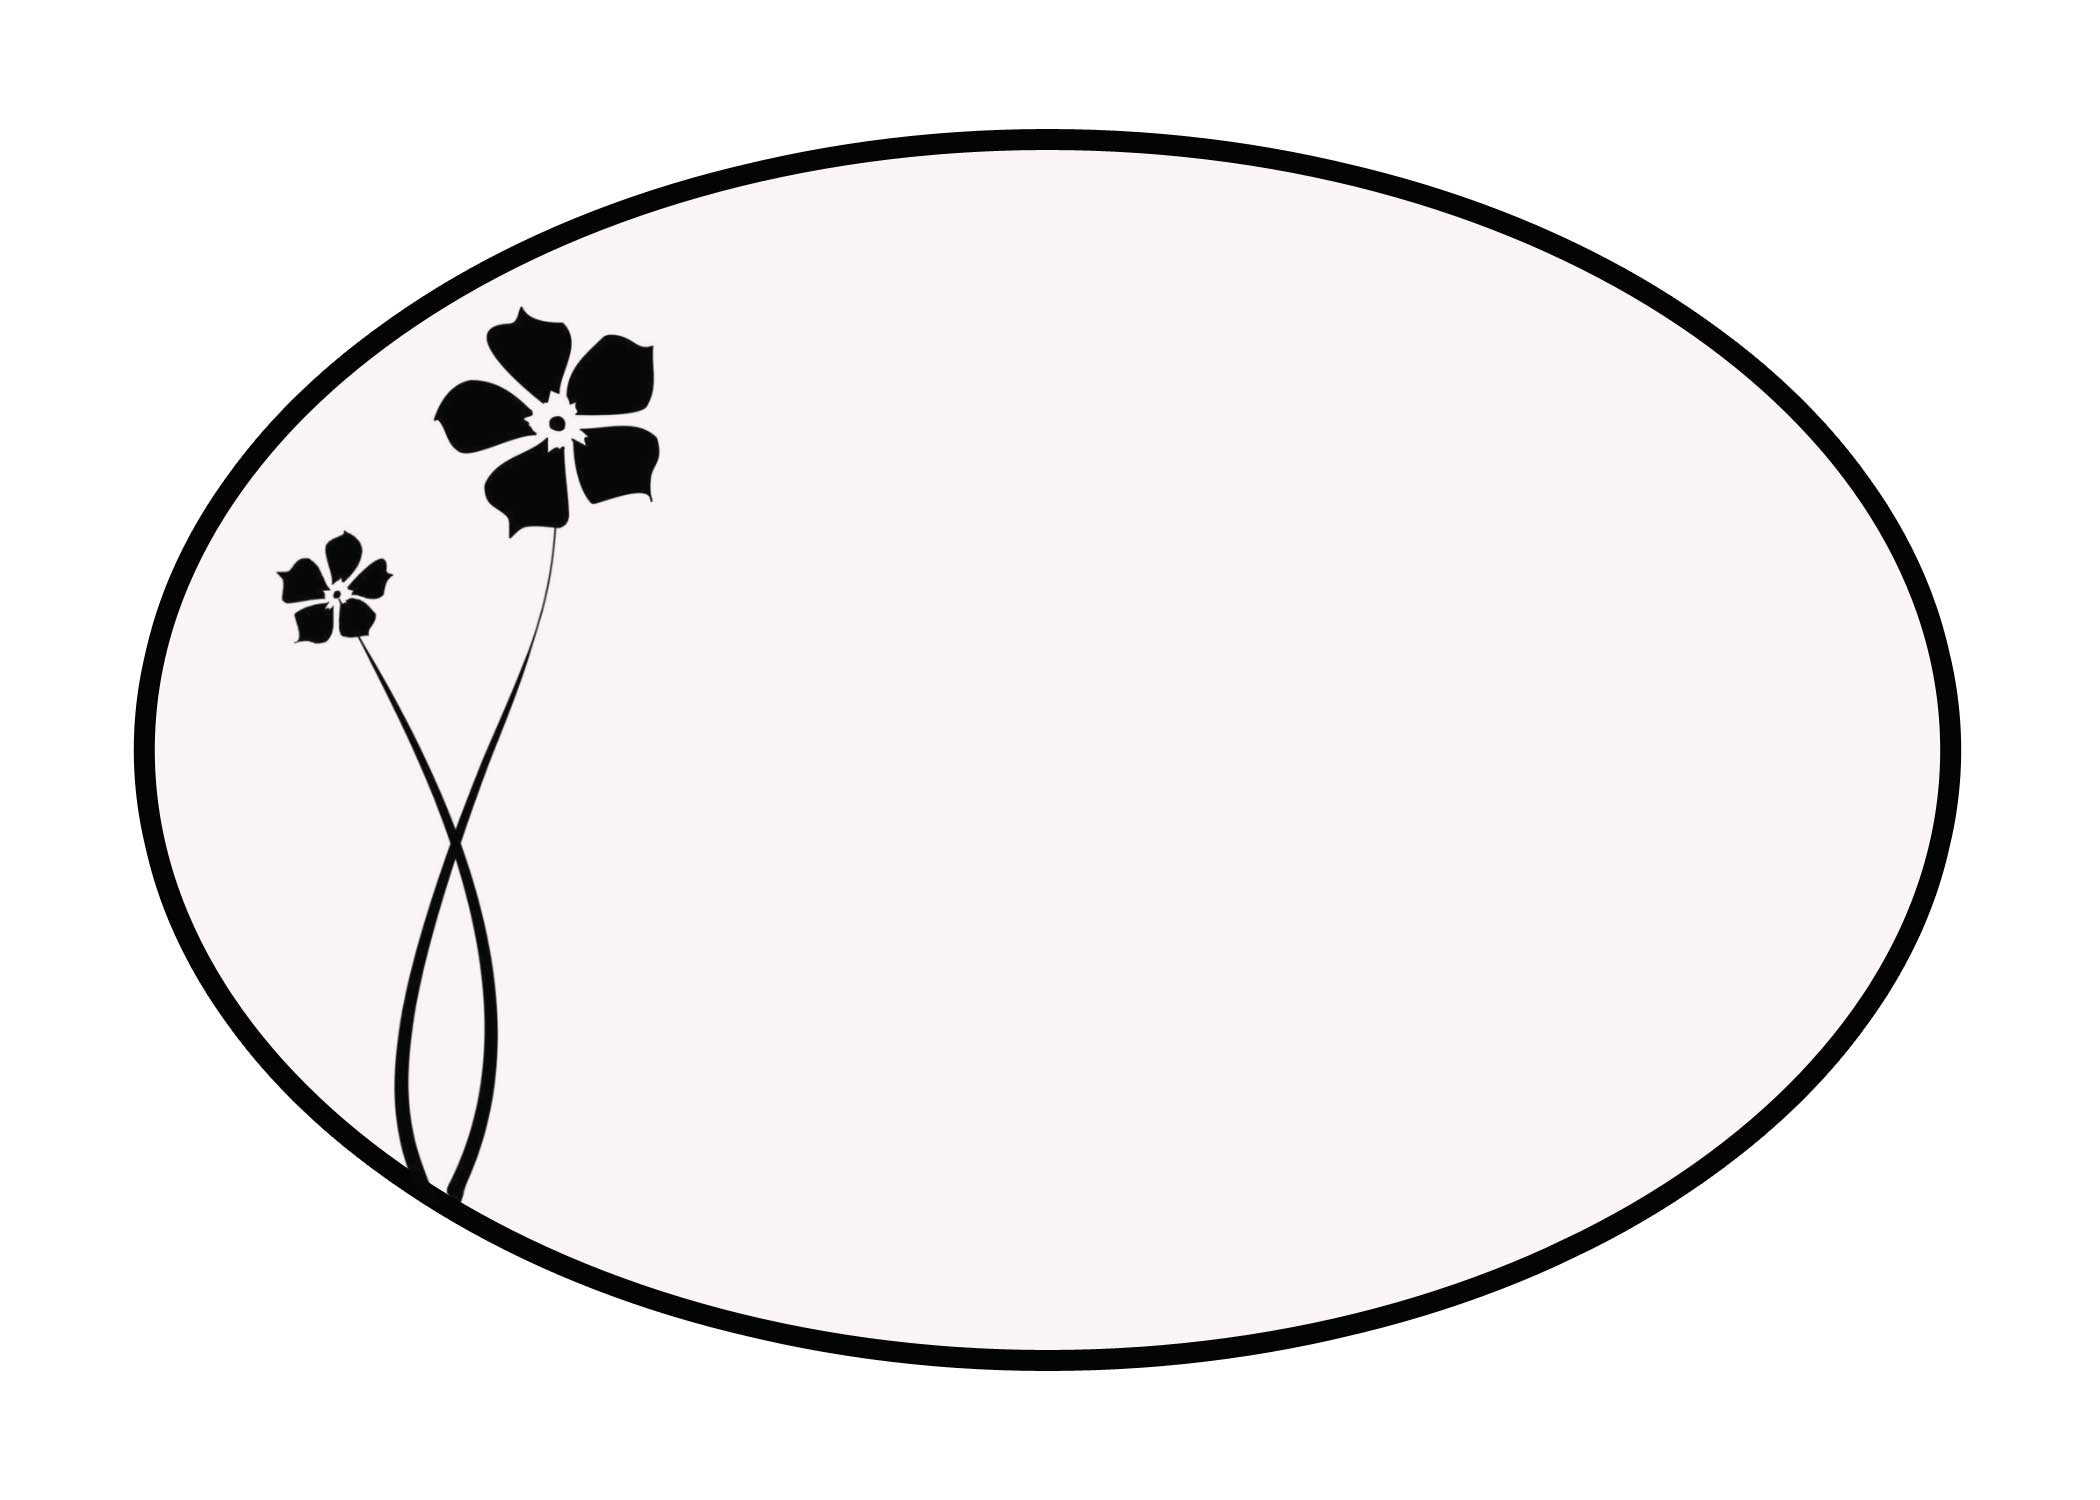 oval shape template jos gandos coloring pages for kids